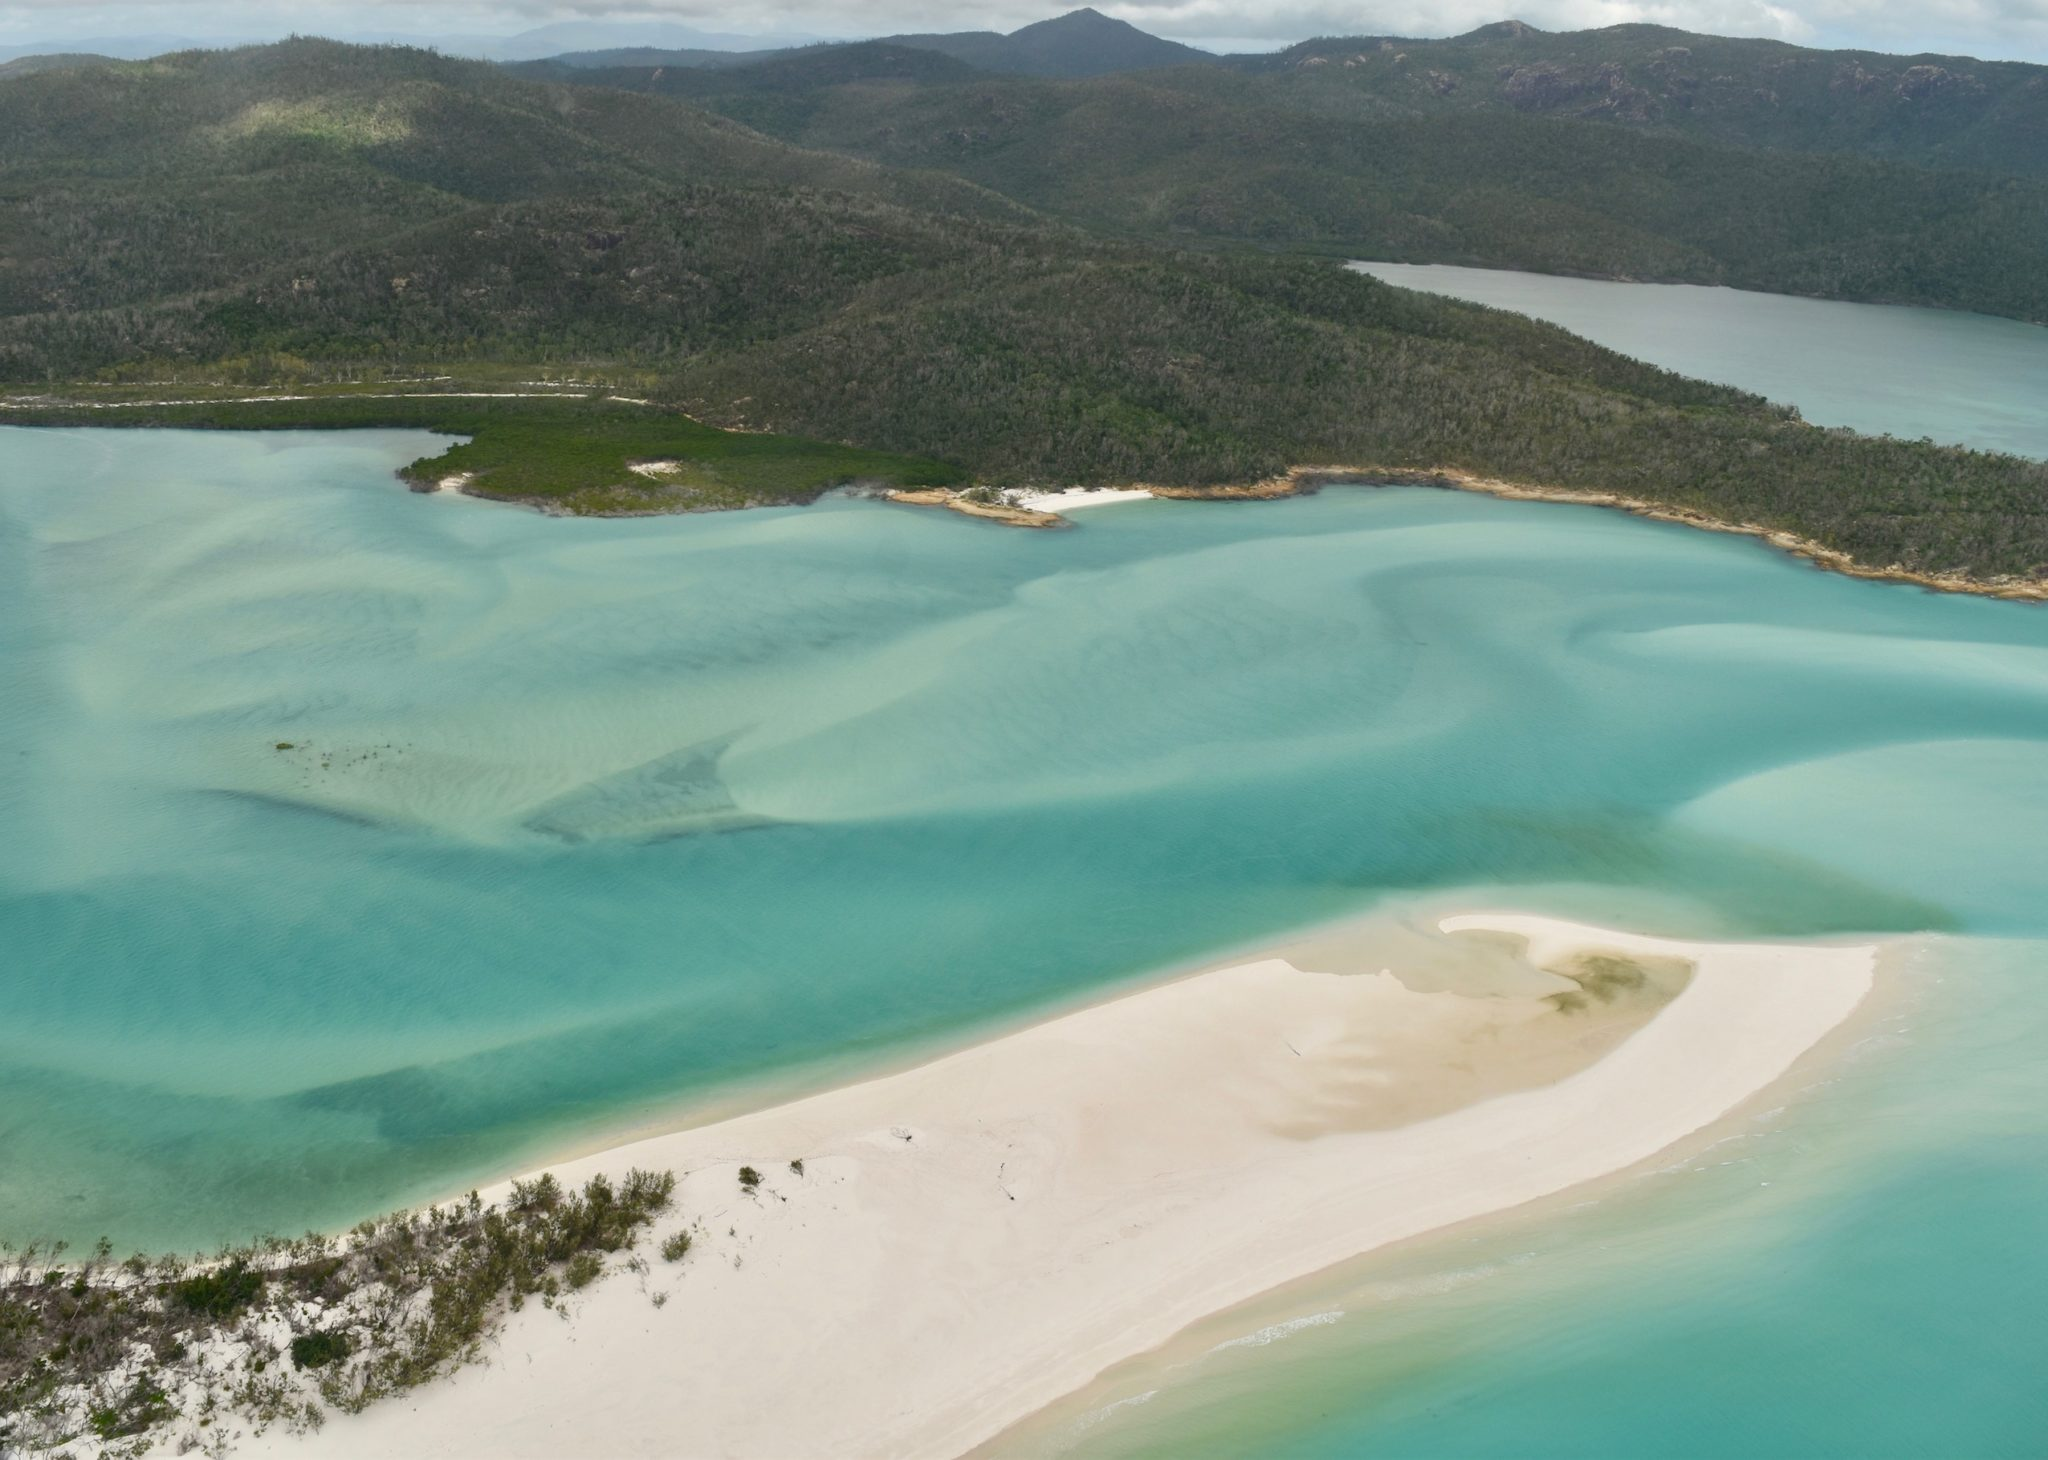 The Whitsundays: How to Discover the Best of the Islands